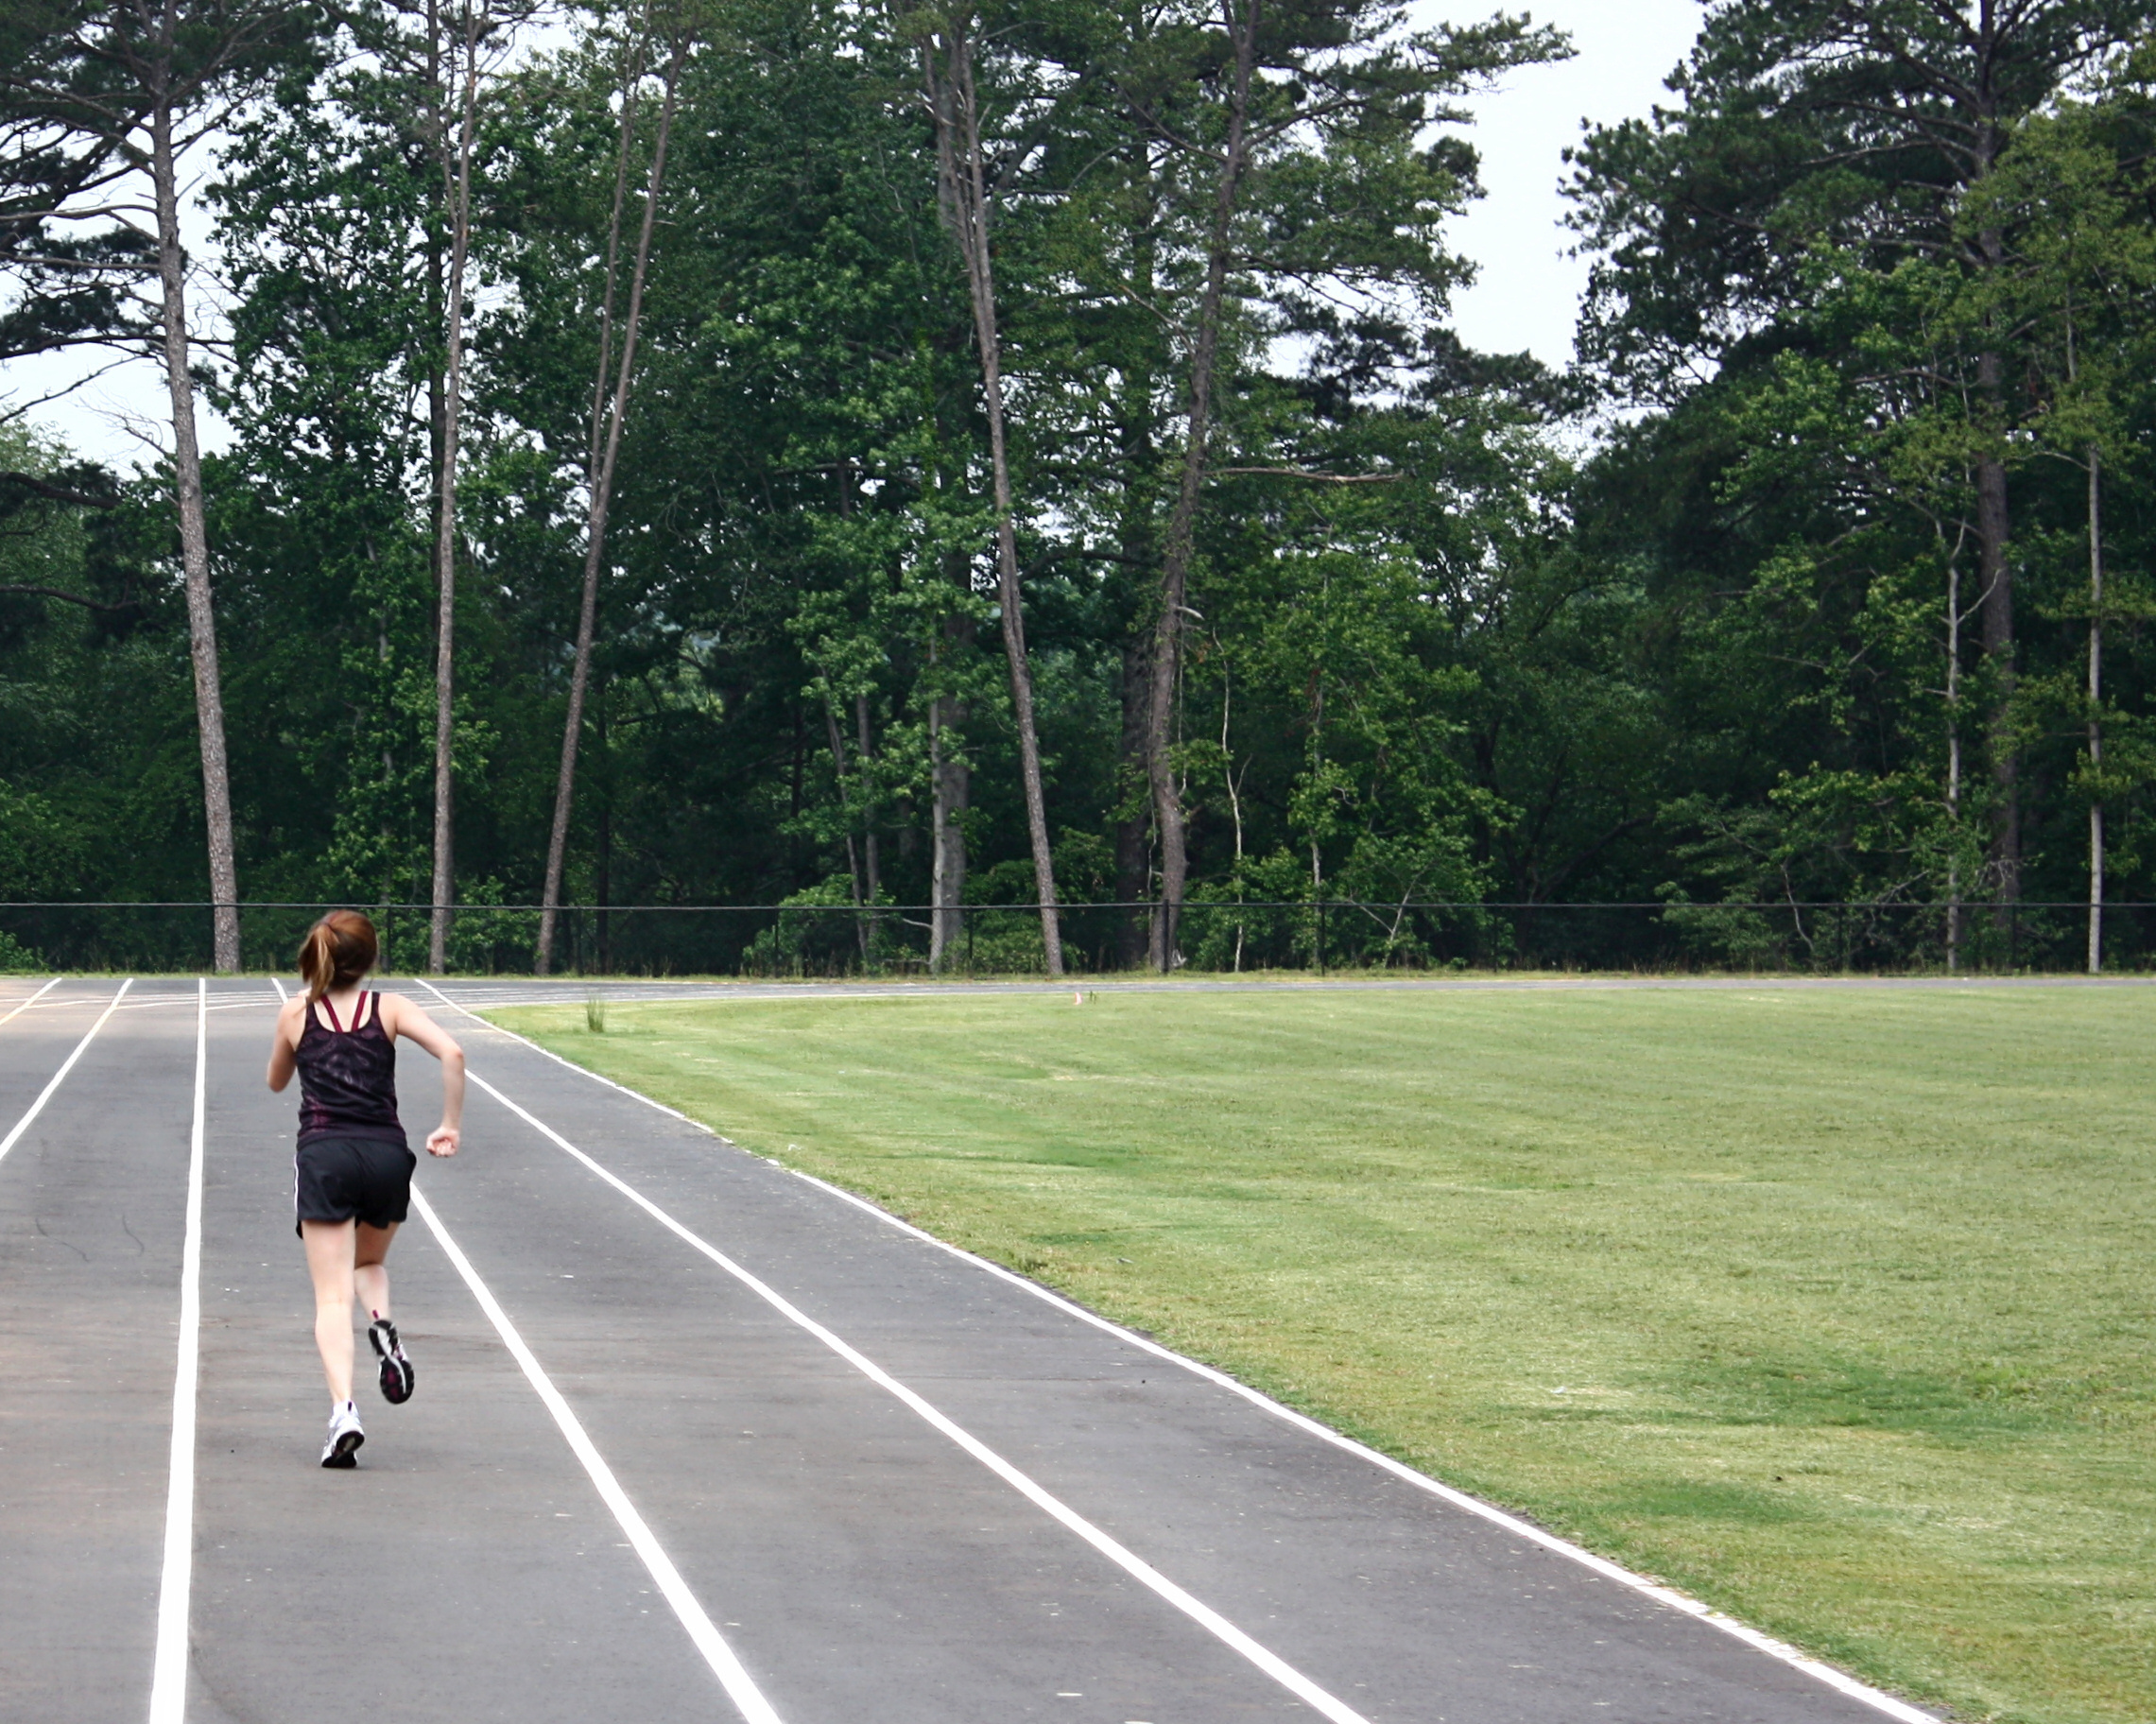 A cute young girl on a track field photo